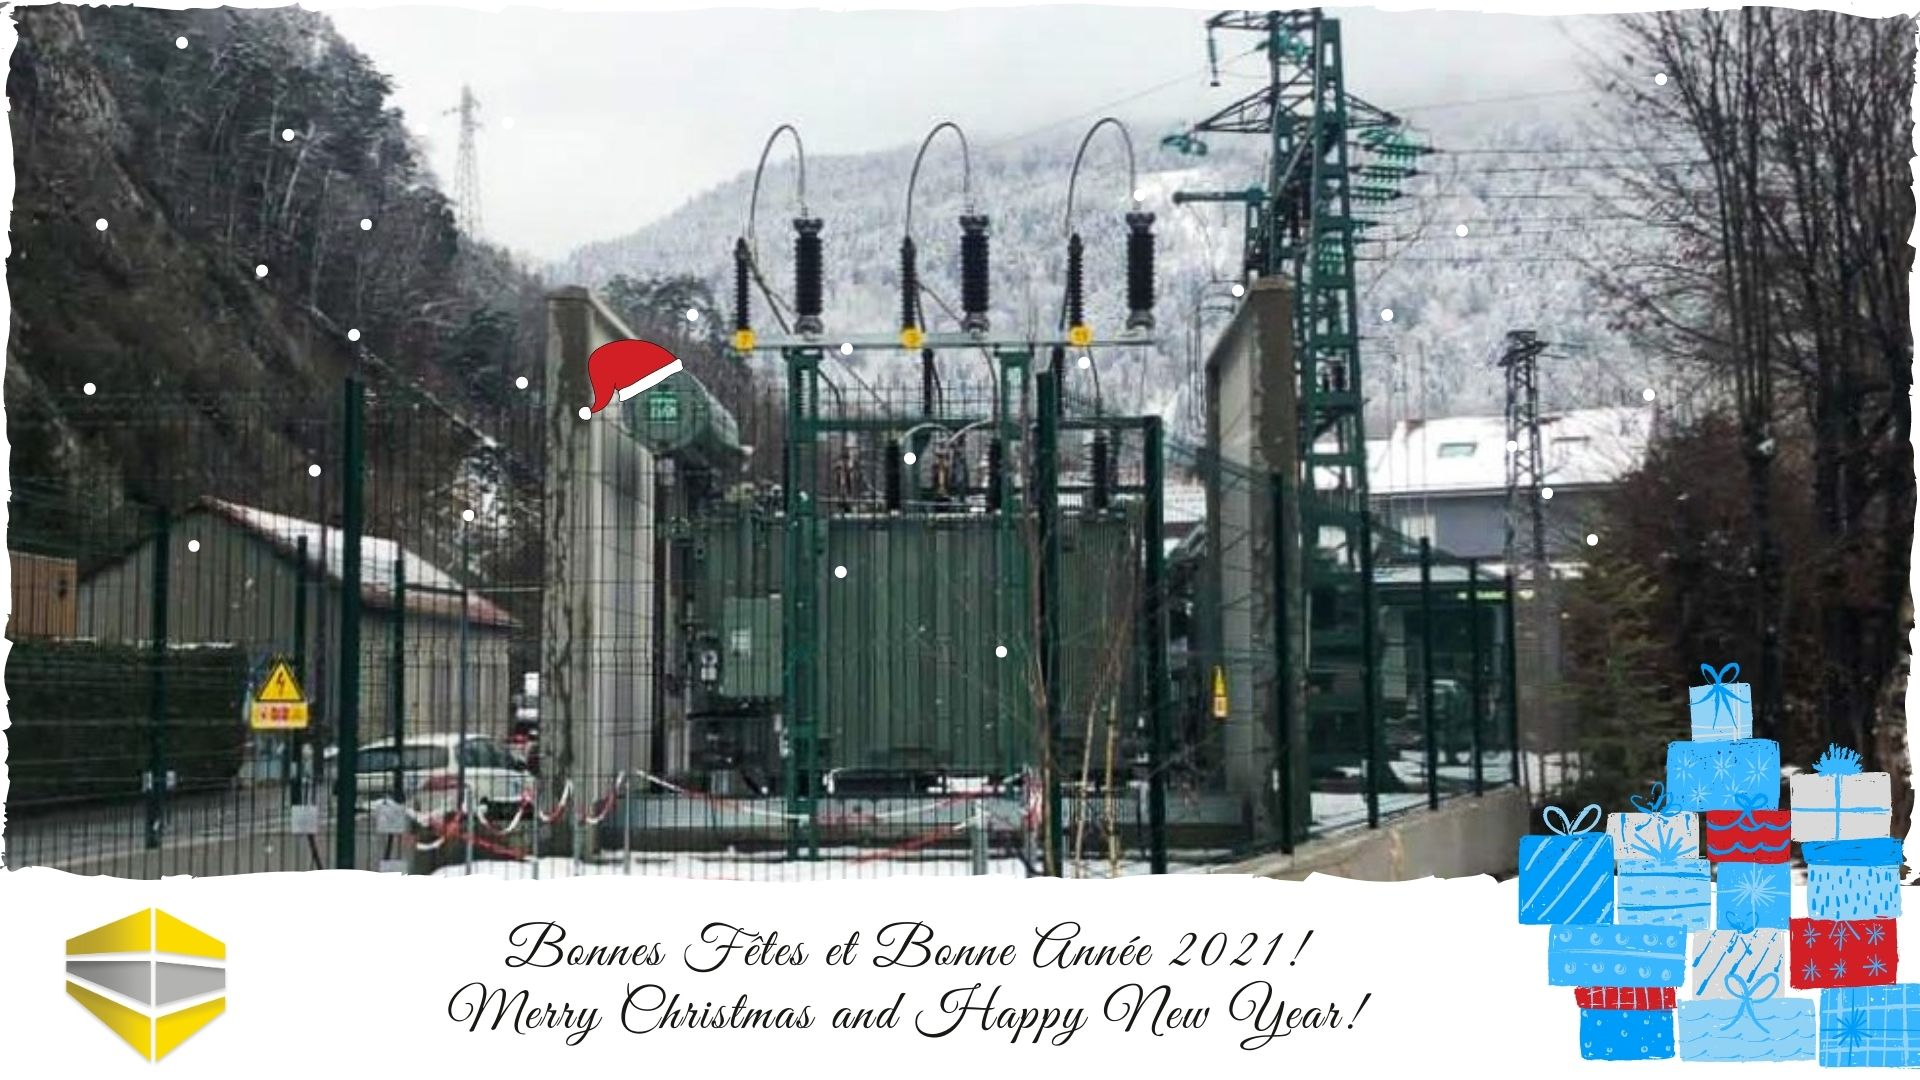 The entire SANERGRID / SONEC team wishes you happy holidays and a happy new year 2021!